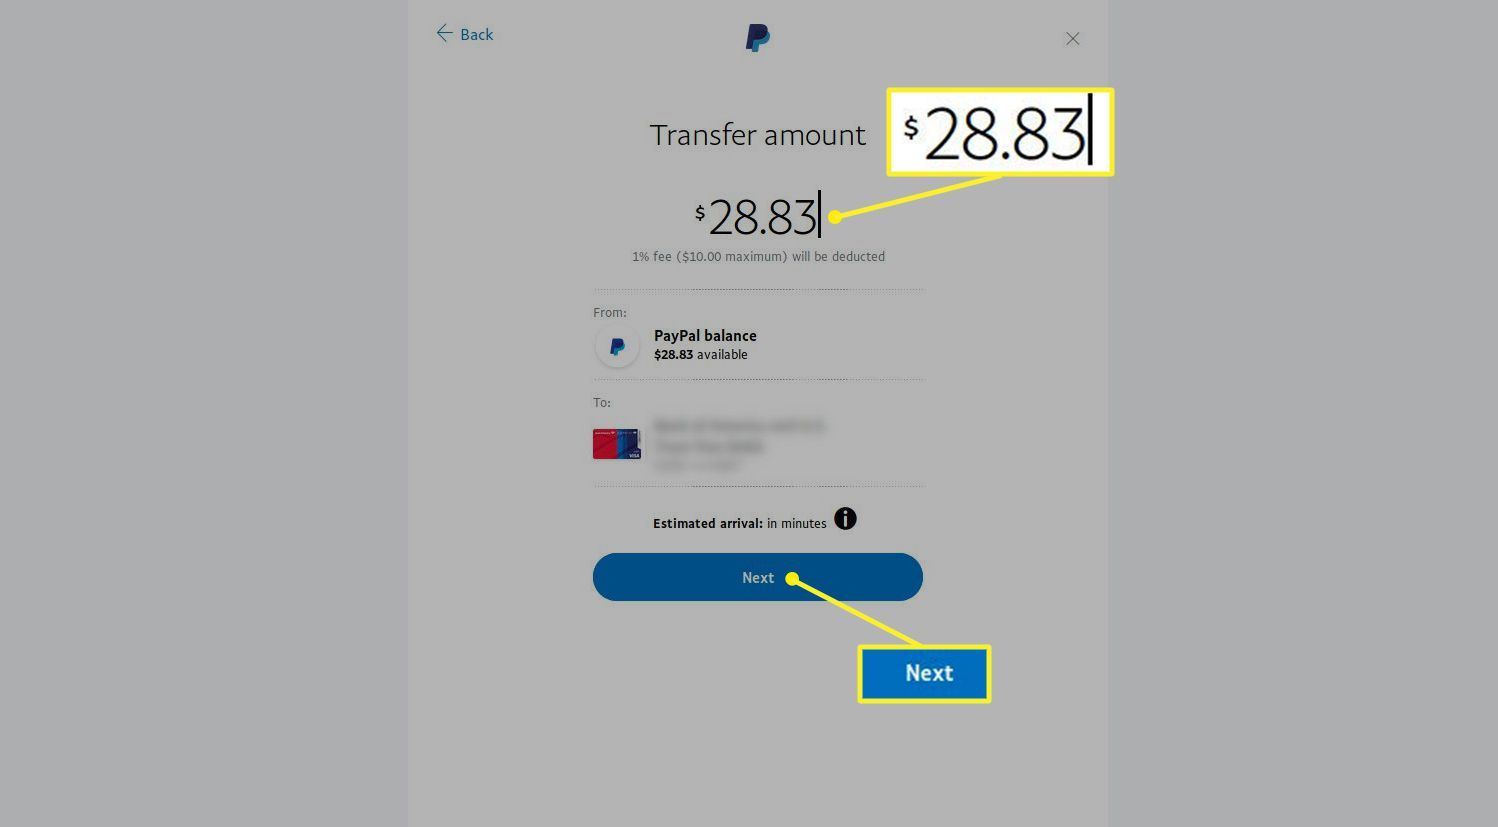 PayPal Transfer amount screen showing the amount entry field